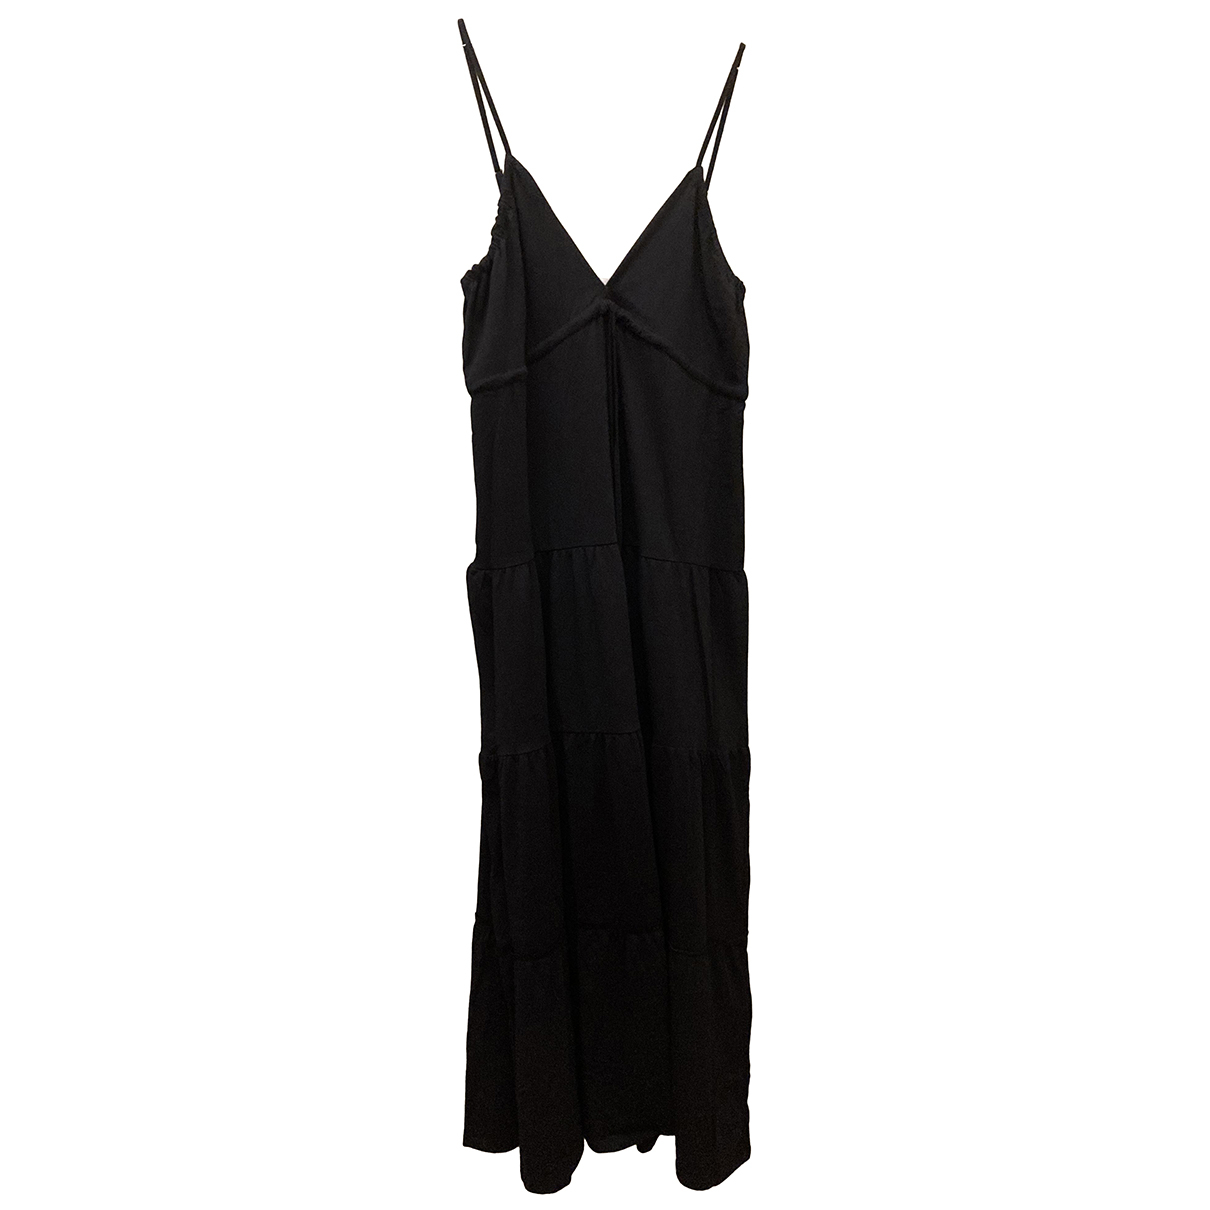 Replay \N Black Cotton dress for Women M International